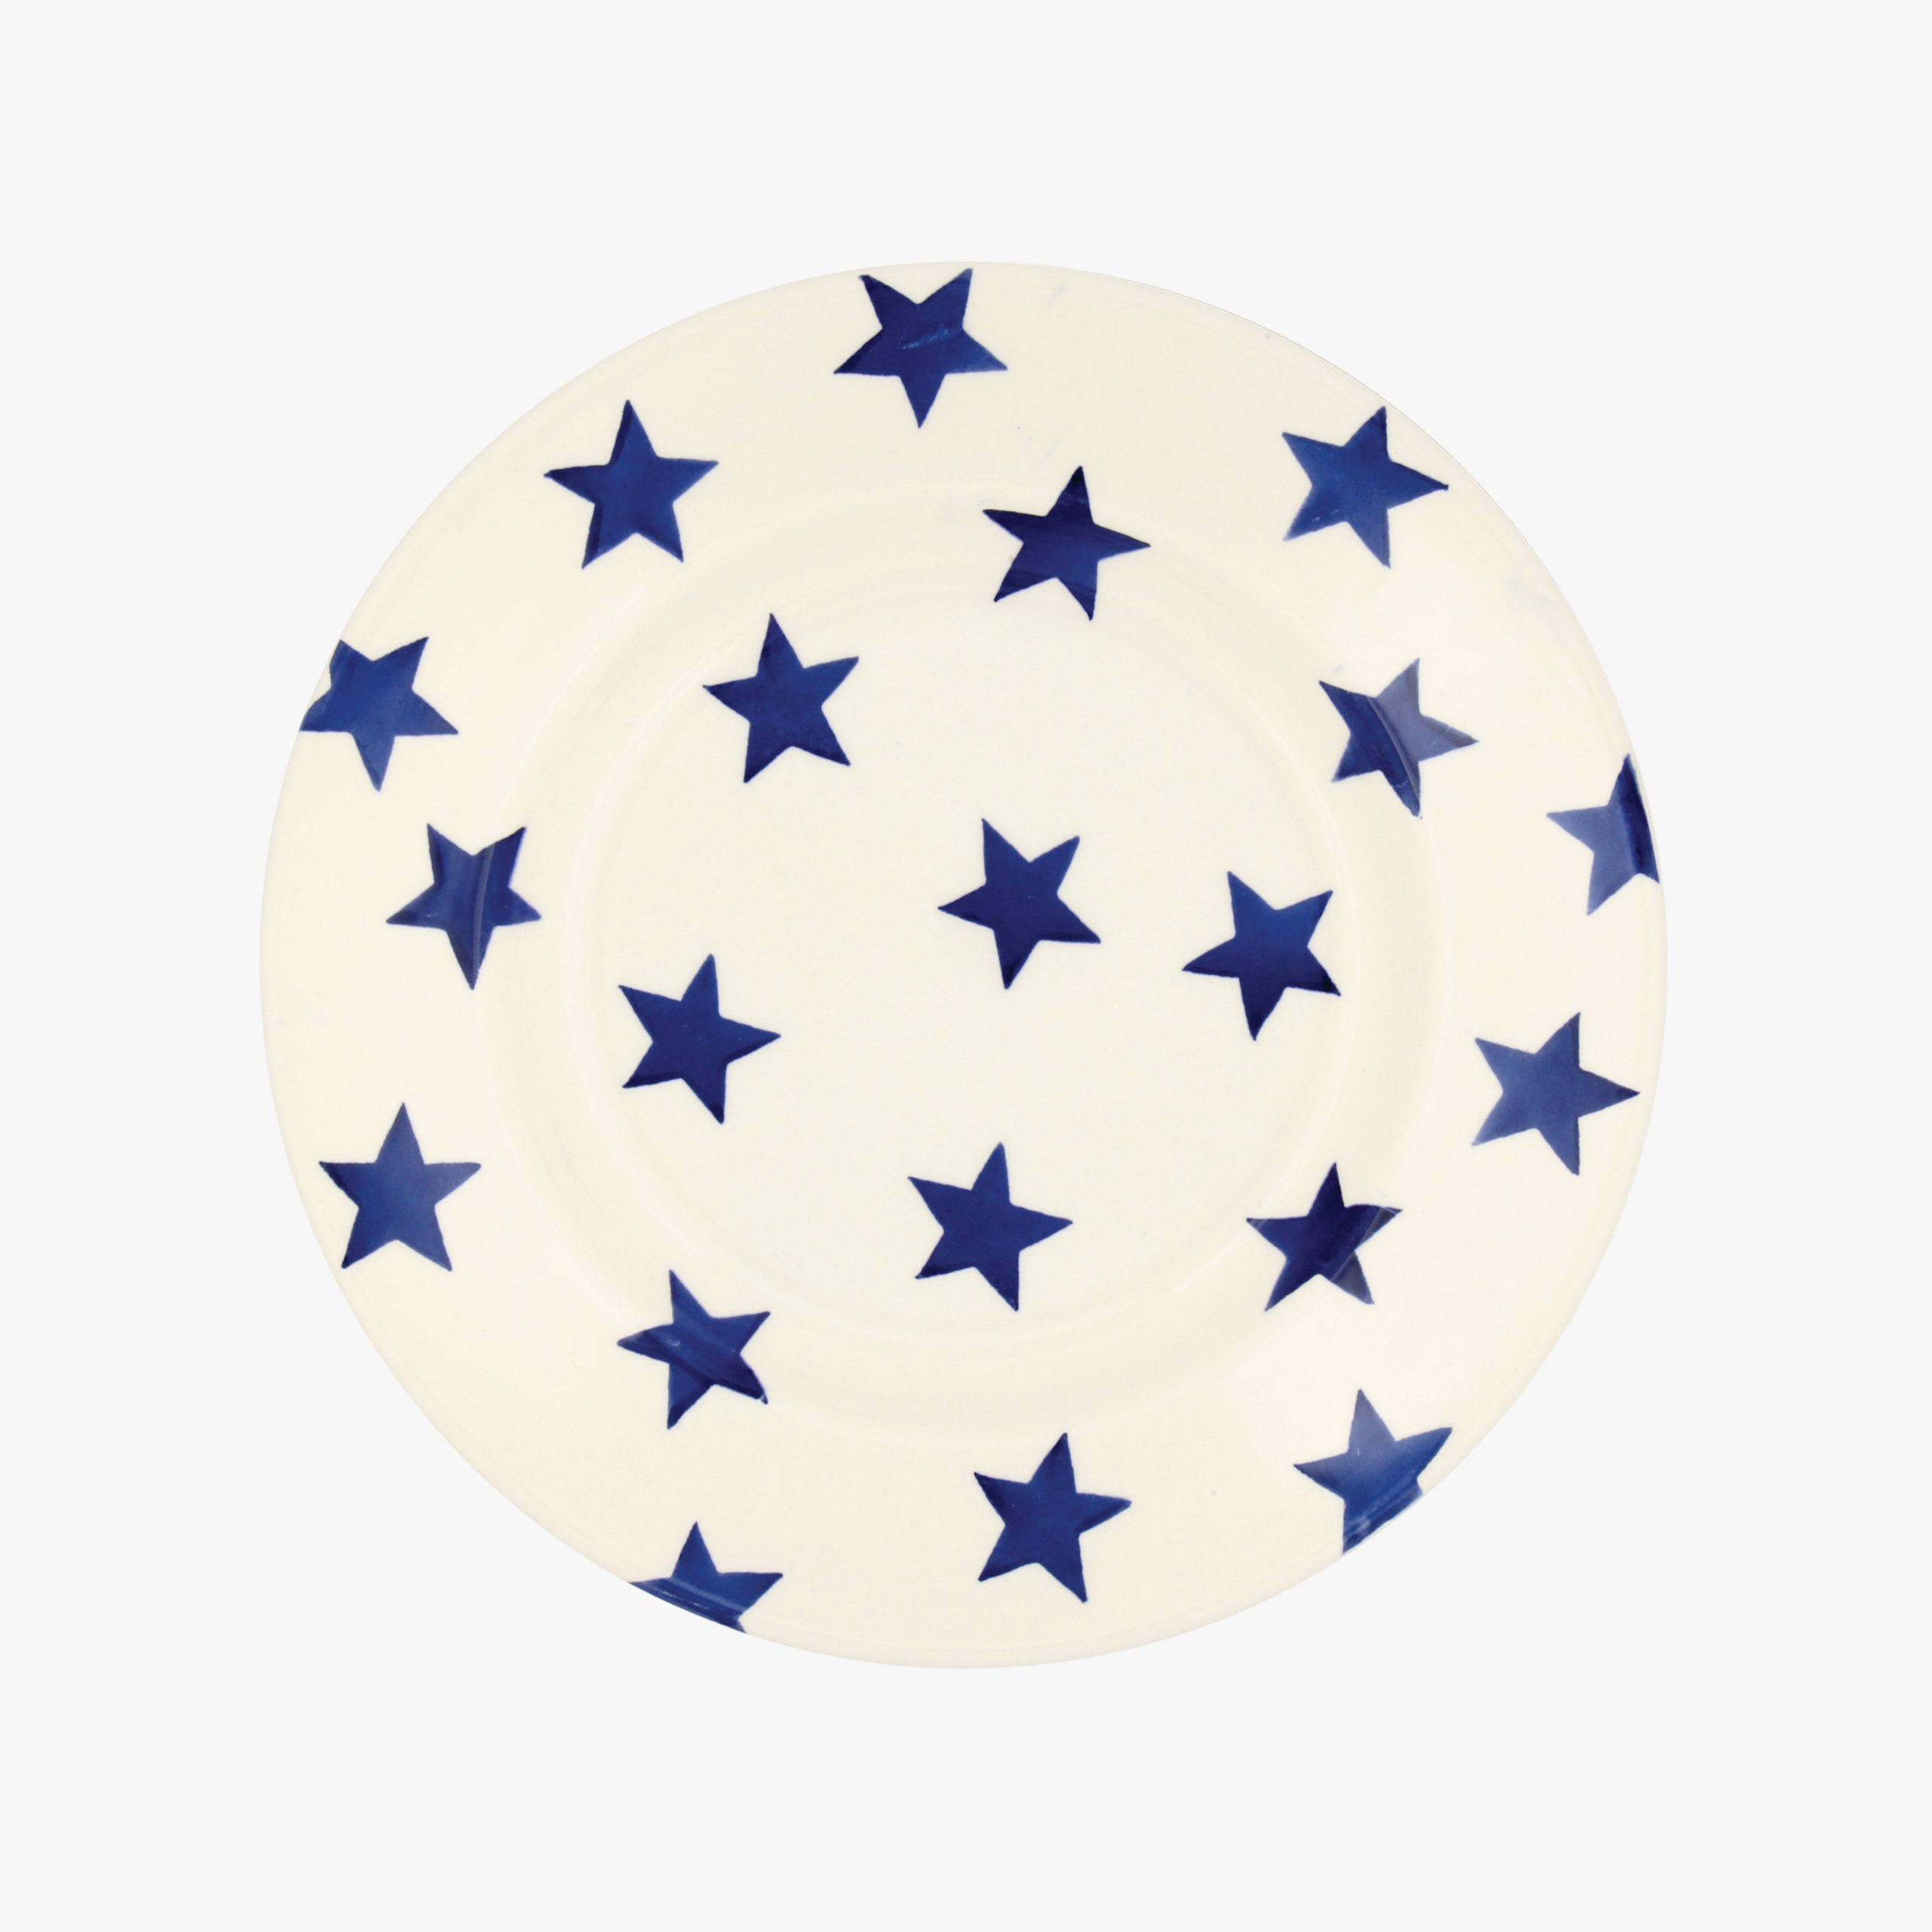 Emma Bridgewater Blue Star 8 1/2